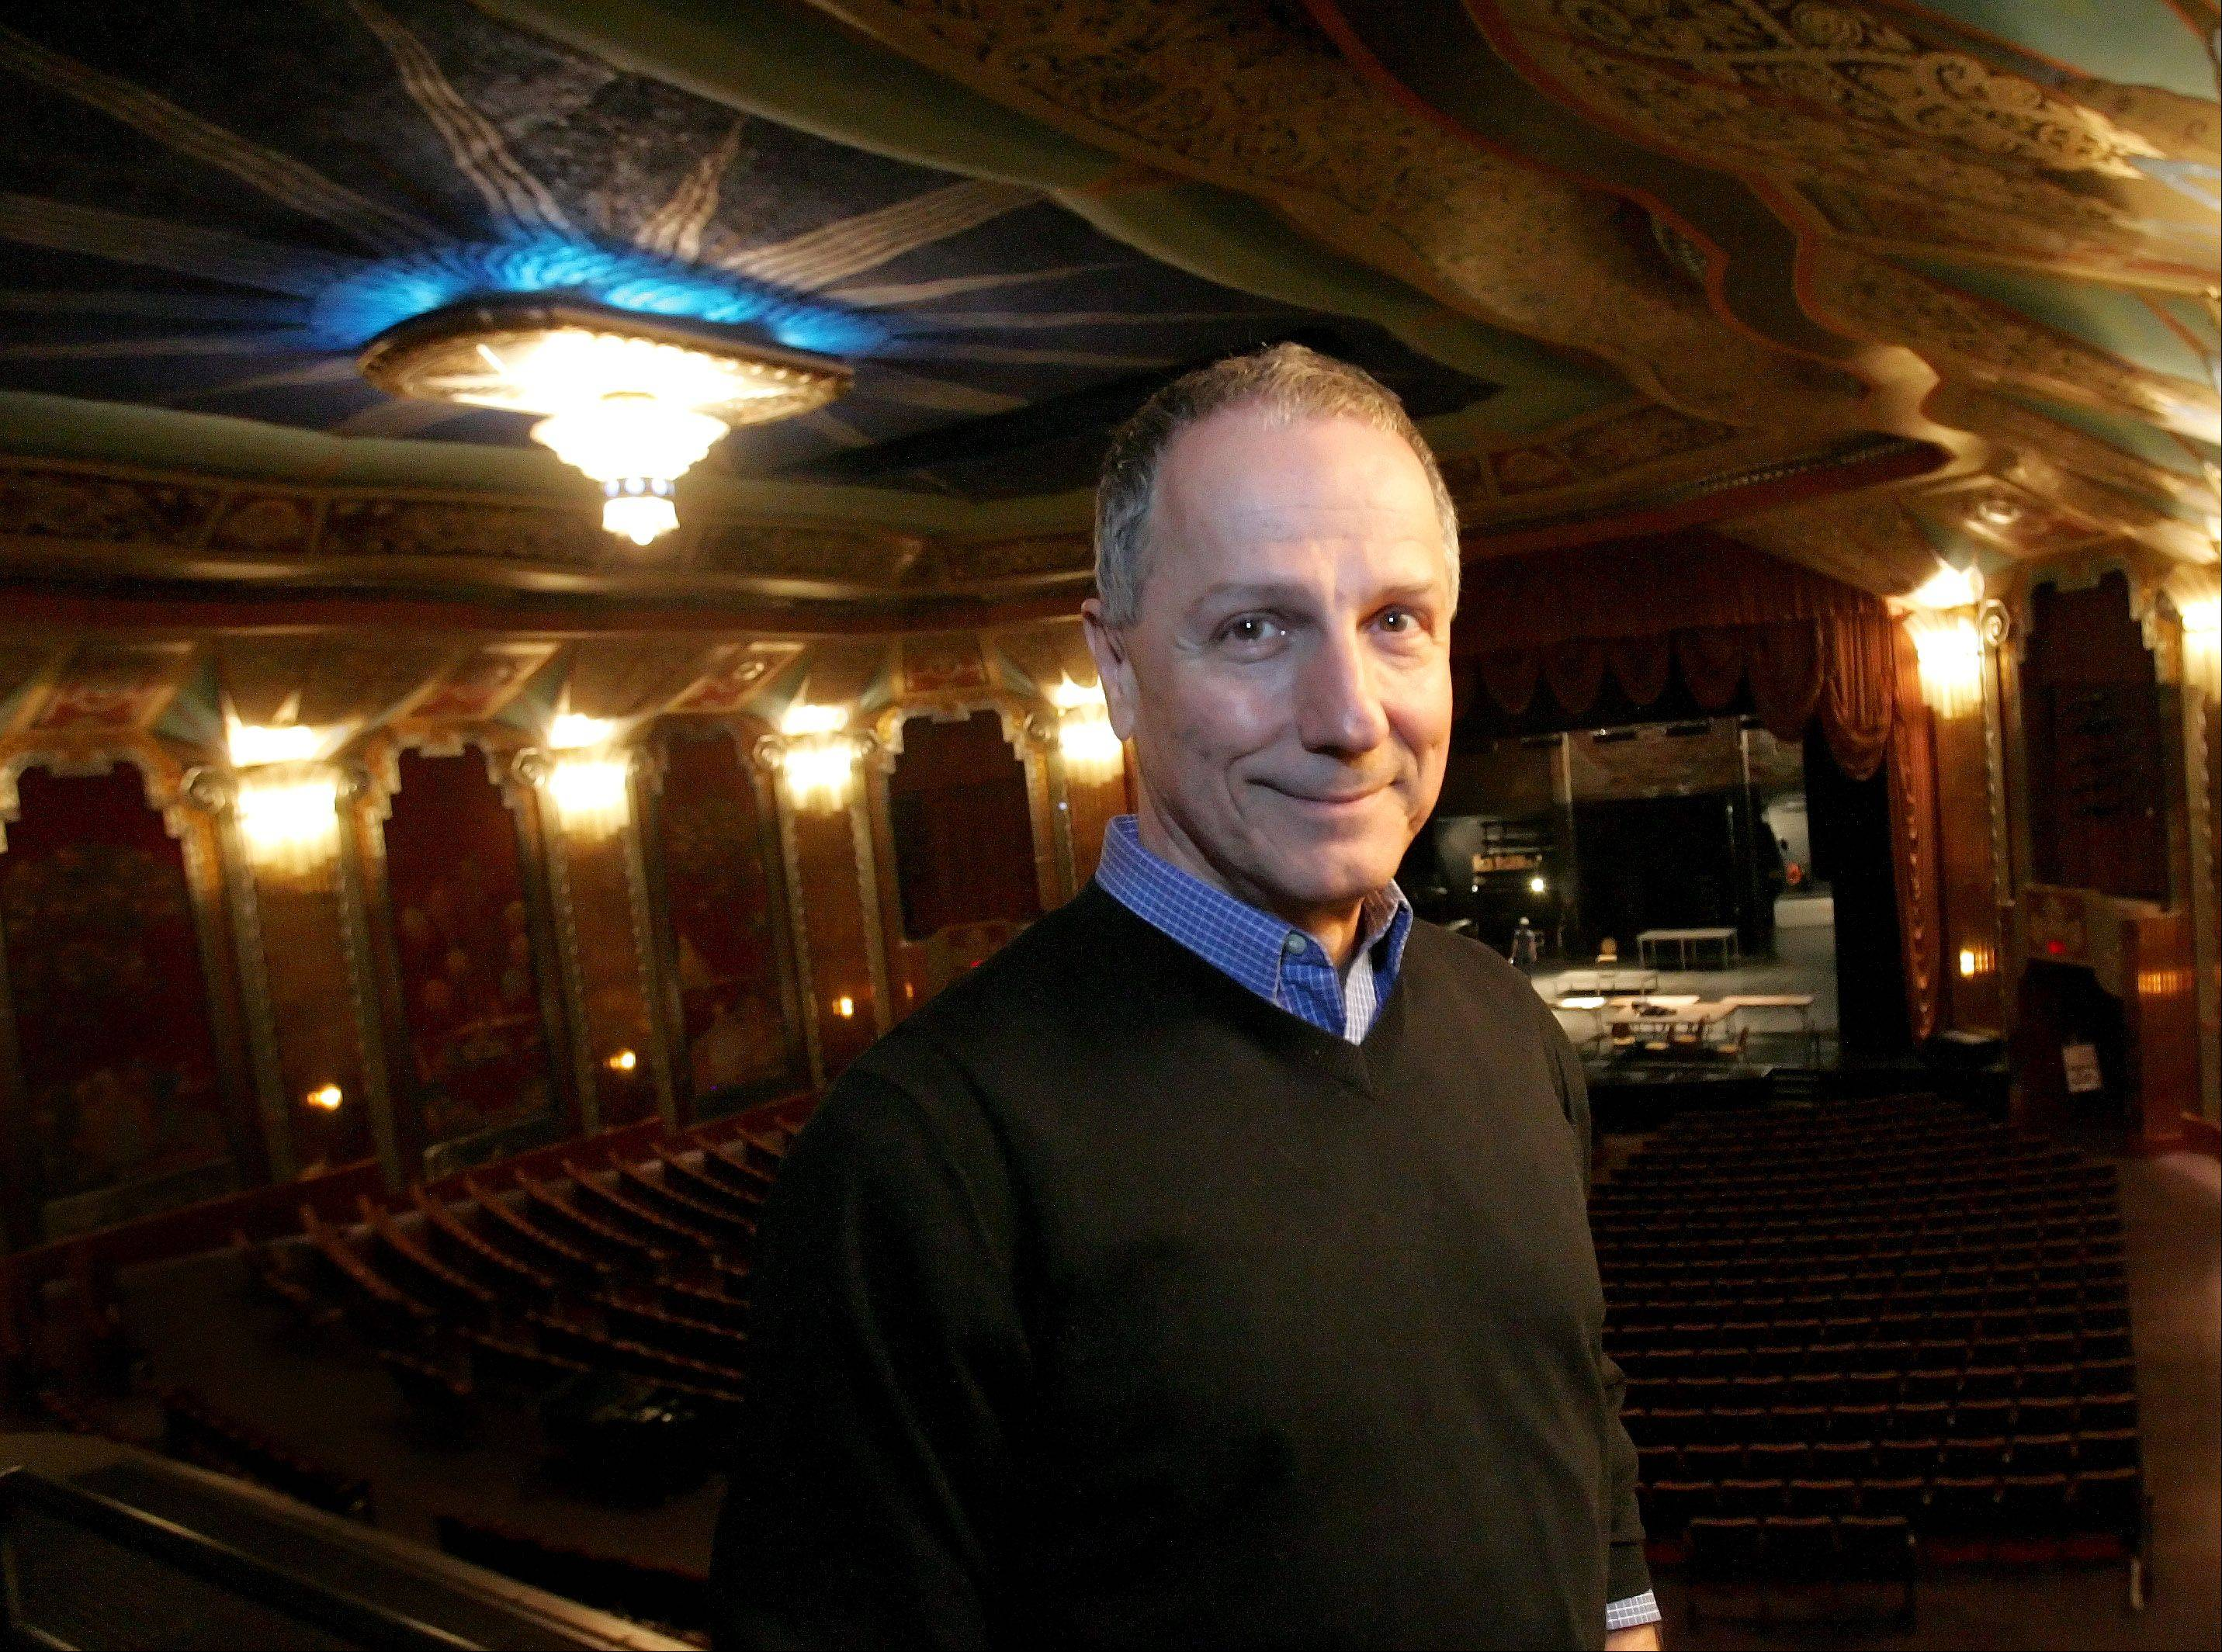 Jim Corti, artistic director at Aurora's Paramount Theatre, will be one of the judges at the Aurora Public Library Teen Talent Show.